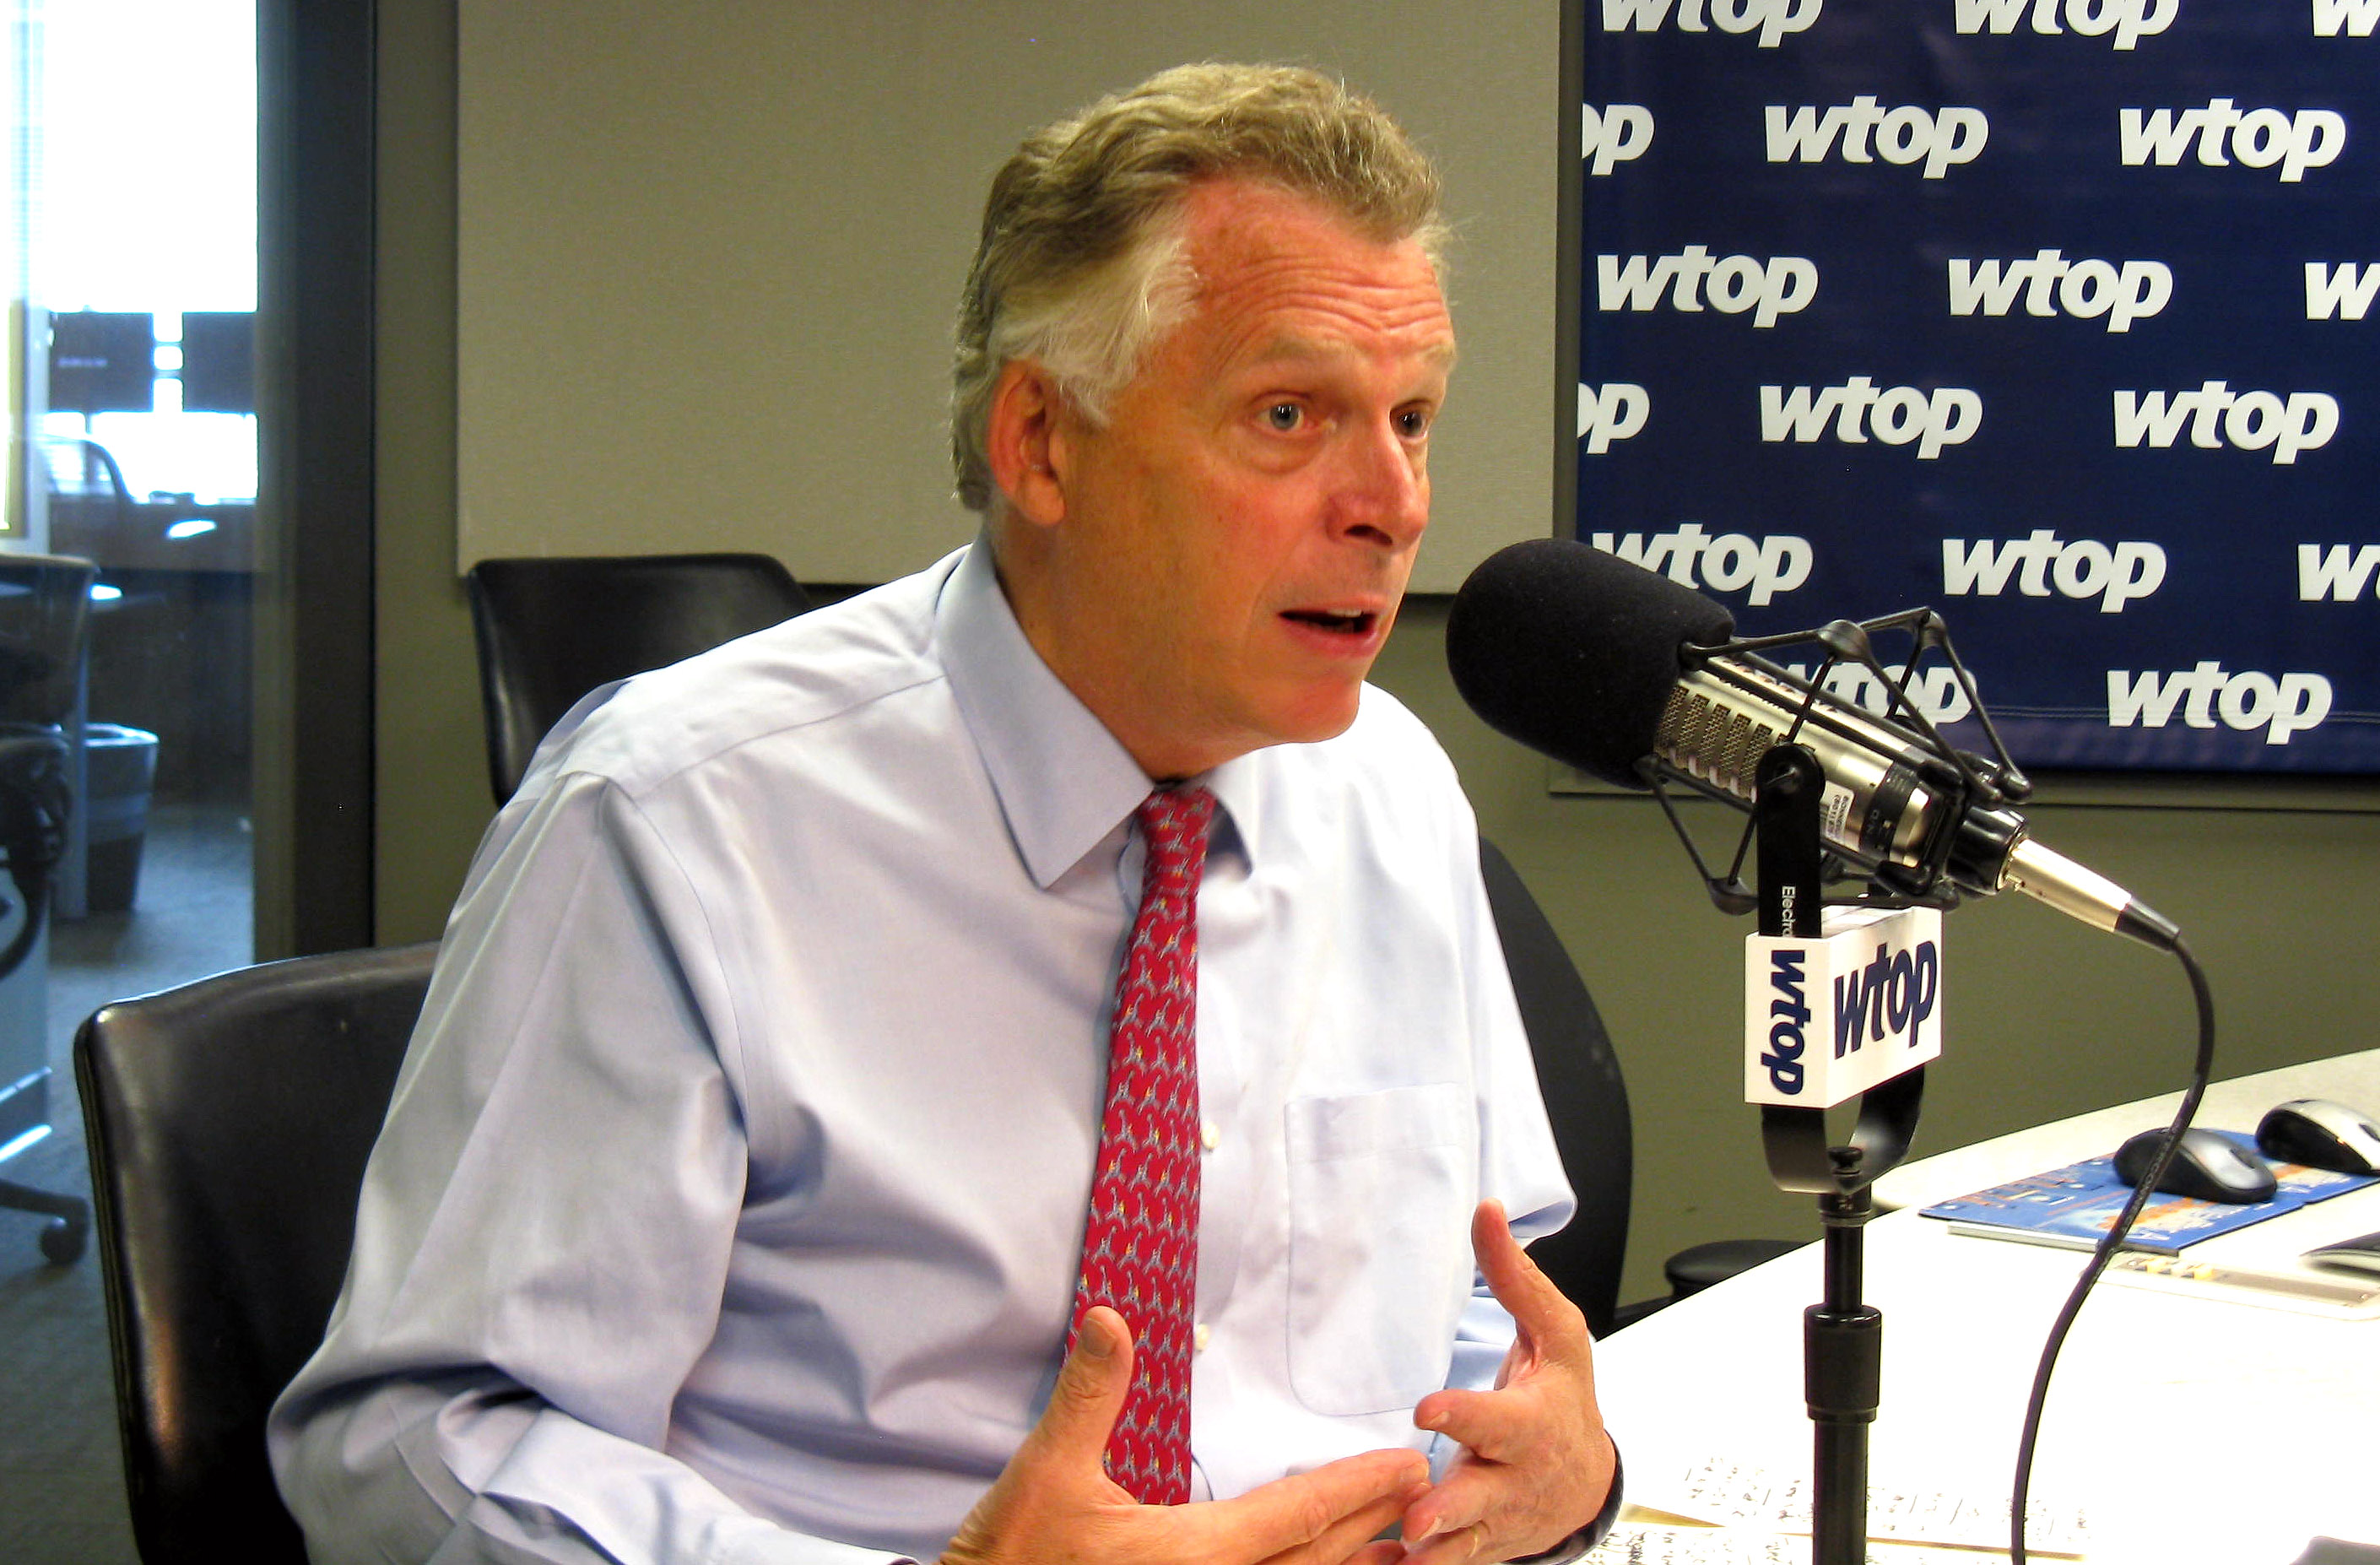 McAuliffe claims out-of-state college applicants take Va. students' spots